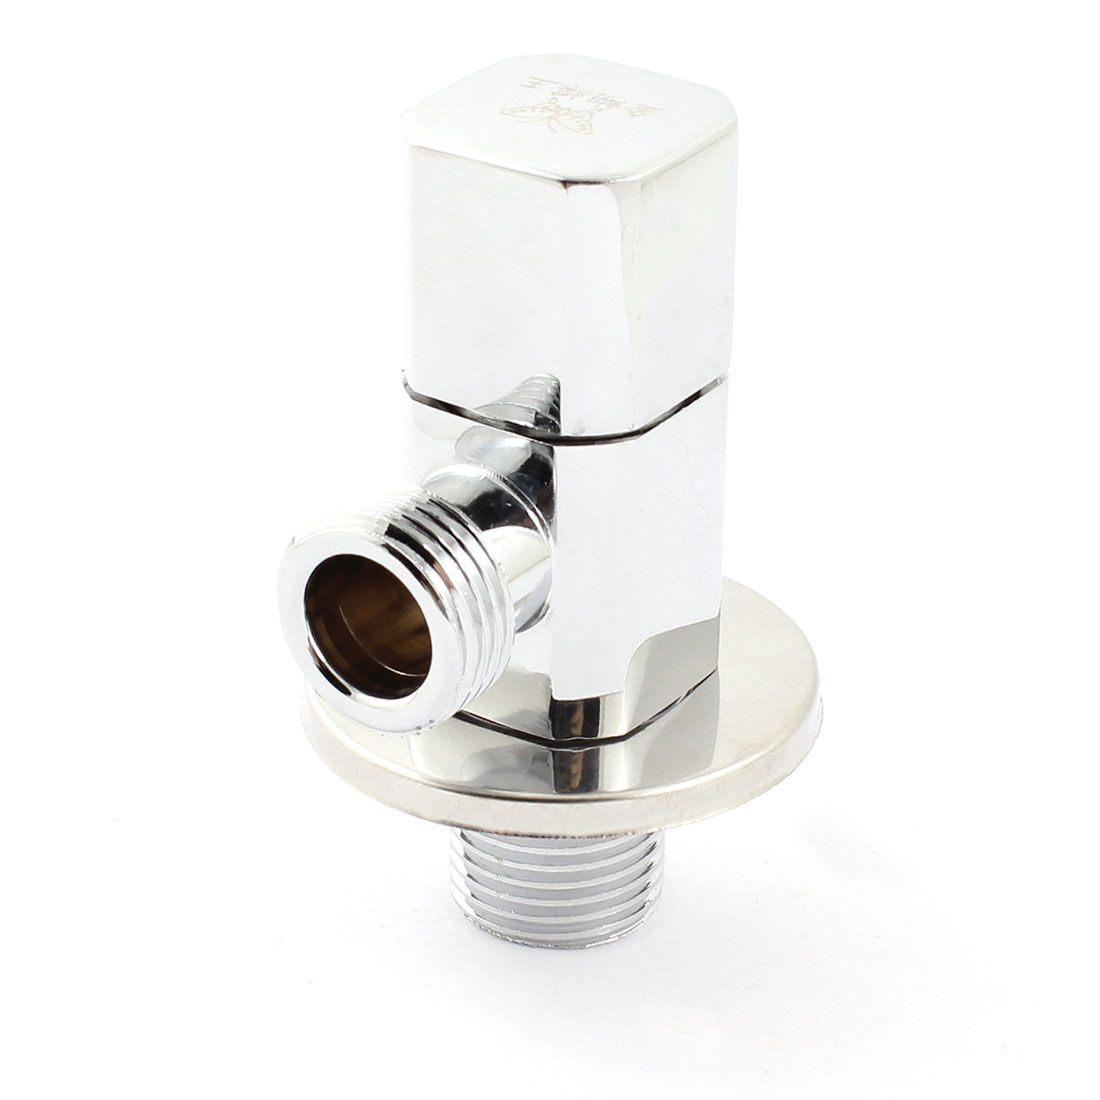 20mm Thread Male to Male Pipe Fitting 2 Way 90 Degree Rotary Water Flow Control Diverter Metallic Angle Valve